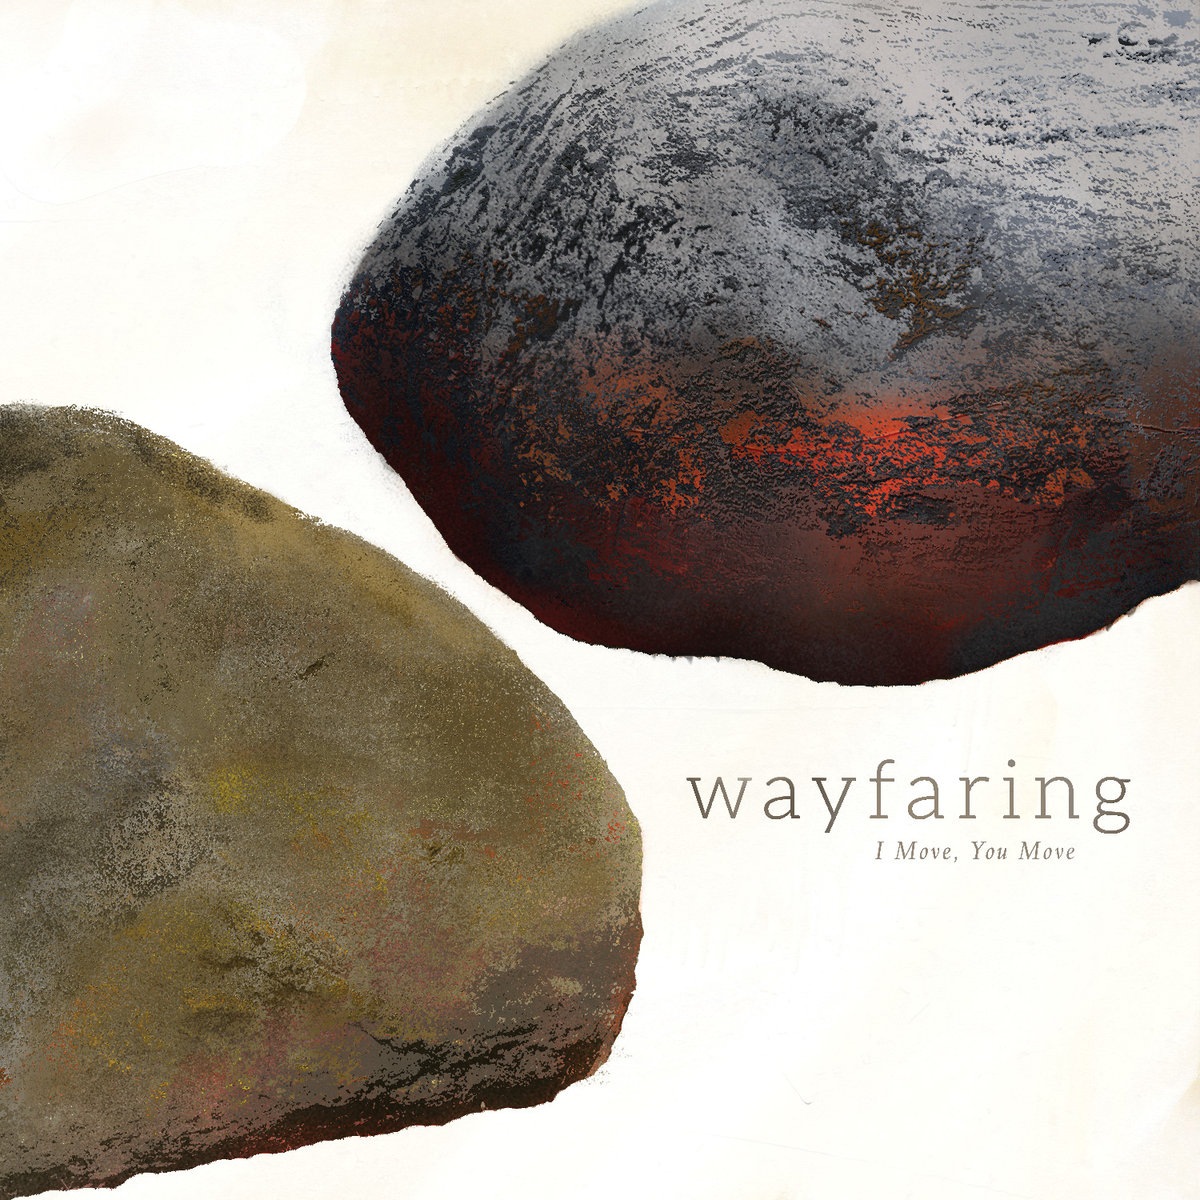 Wayfaring - Duo project with Seattle-based clarinetist and improviser James Falzone. Unique takes on folk songs, hymns, and originals.